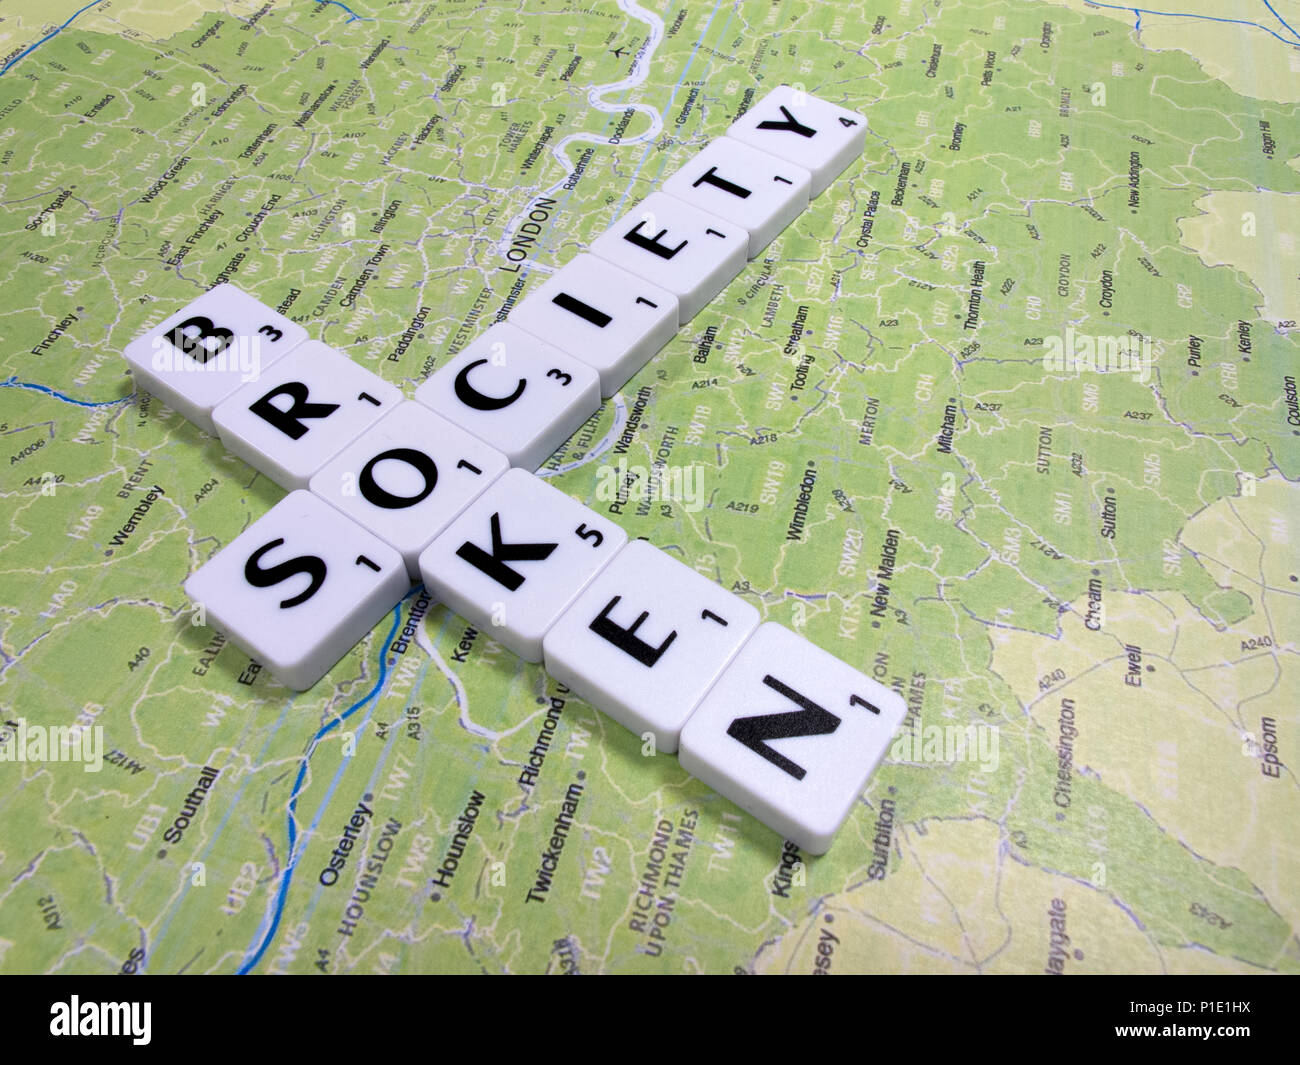 representation of broken society, a perceived or apparent general decline in moral values, with London map background - Stock Image